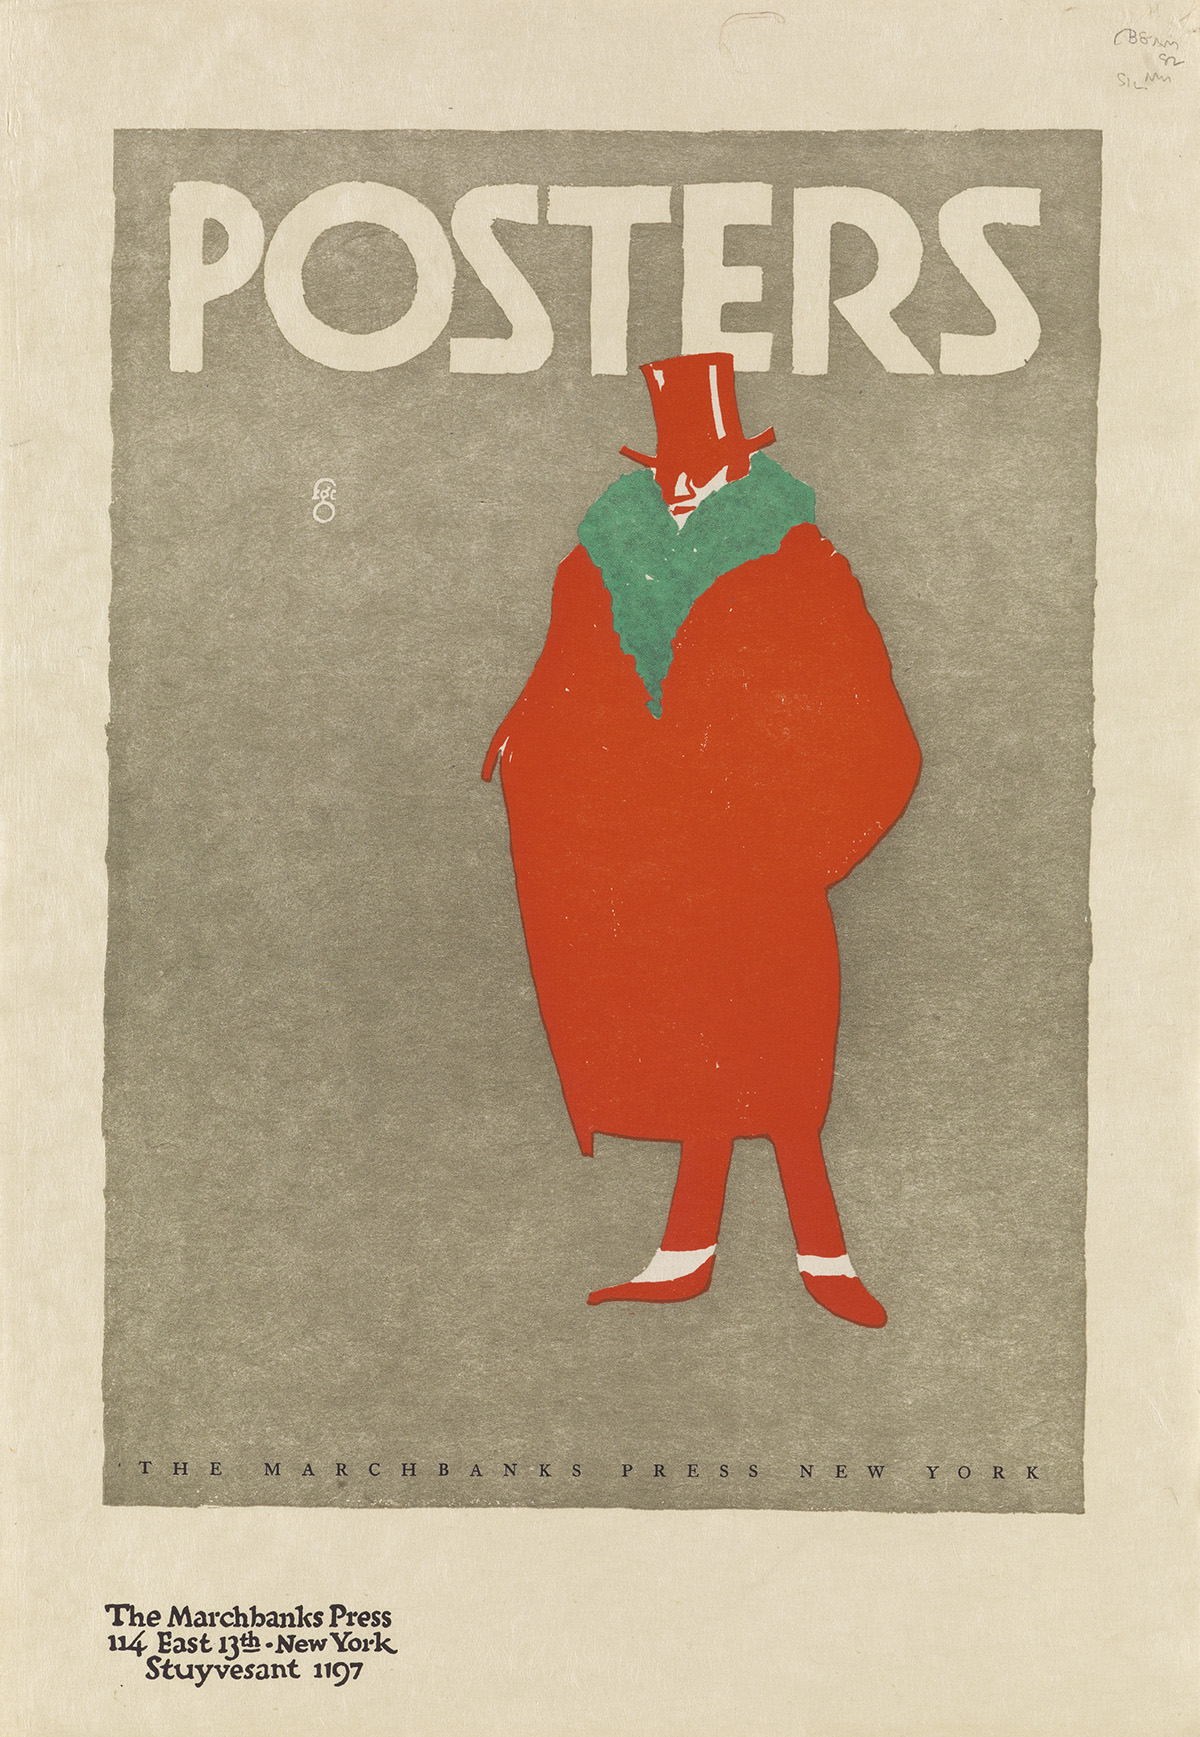 FRED G. COOPER (1883-1962). POSTERS. Circa 1910. 16x11 inches, 40x28 cm. The Marchbanks Press, New York.